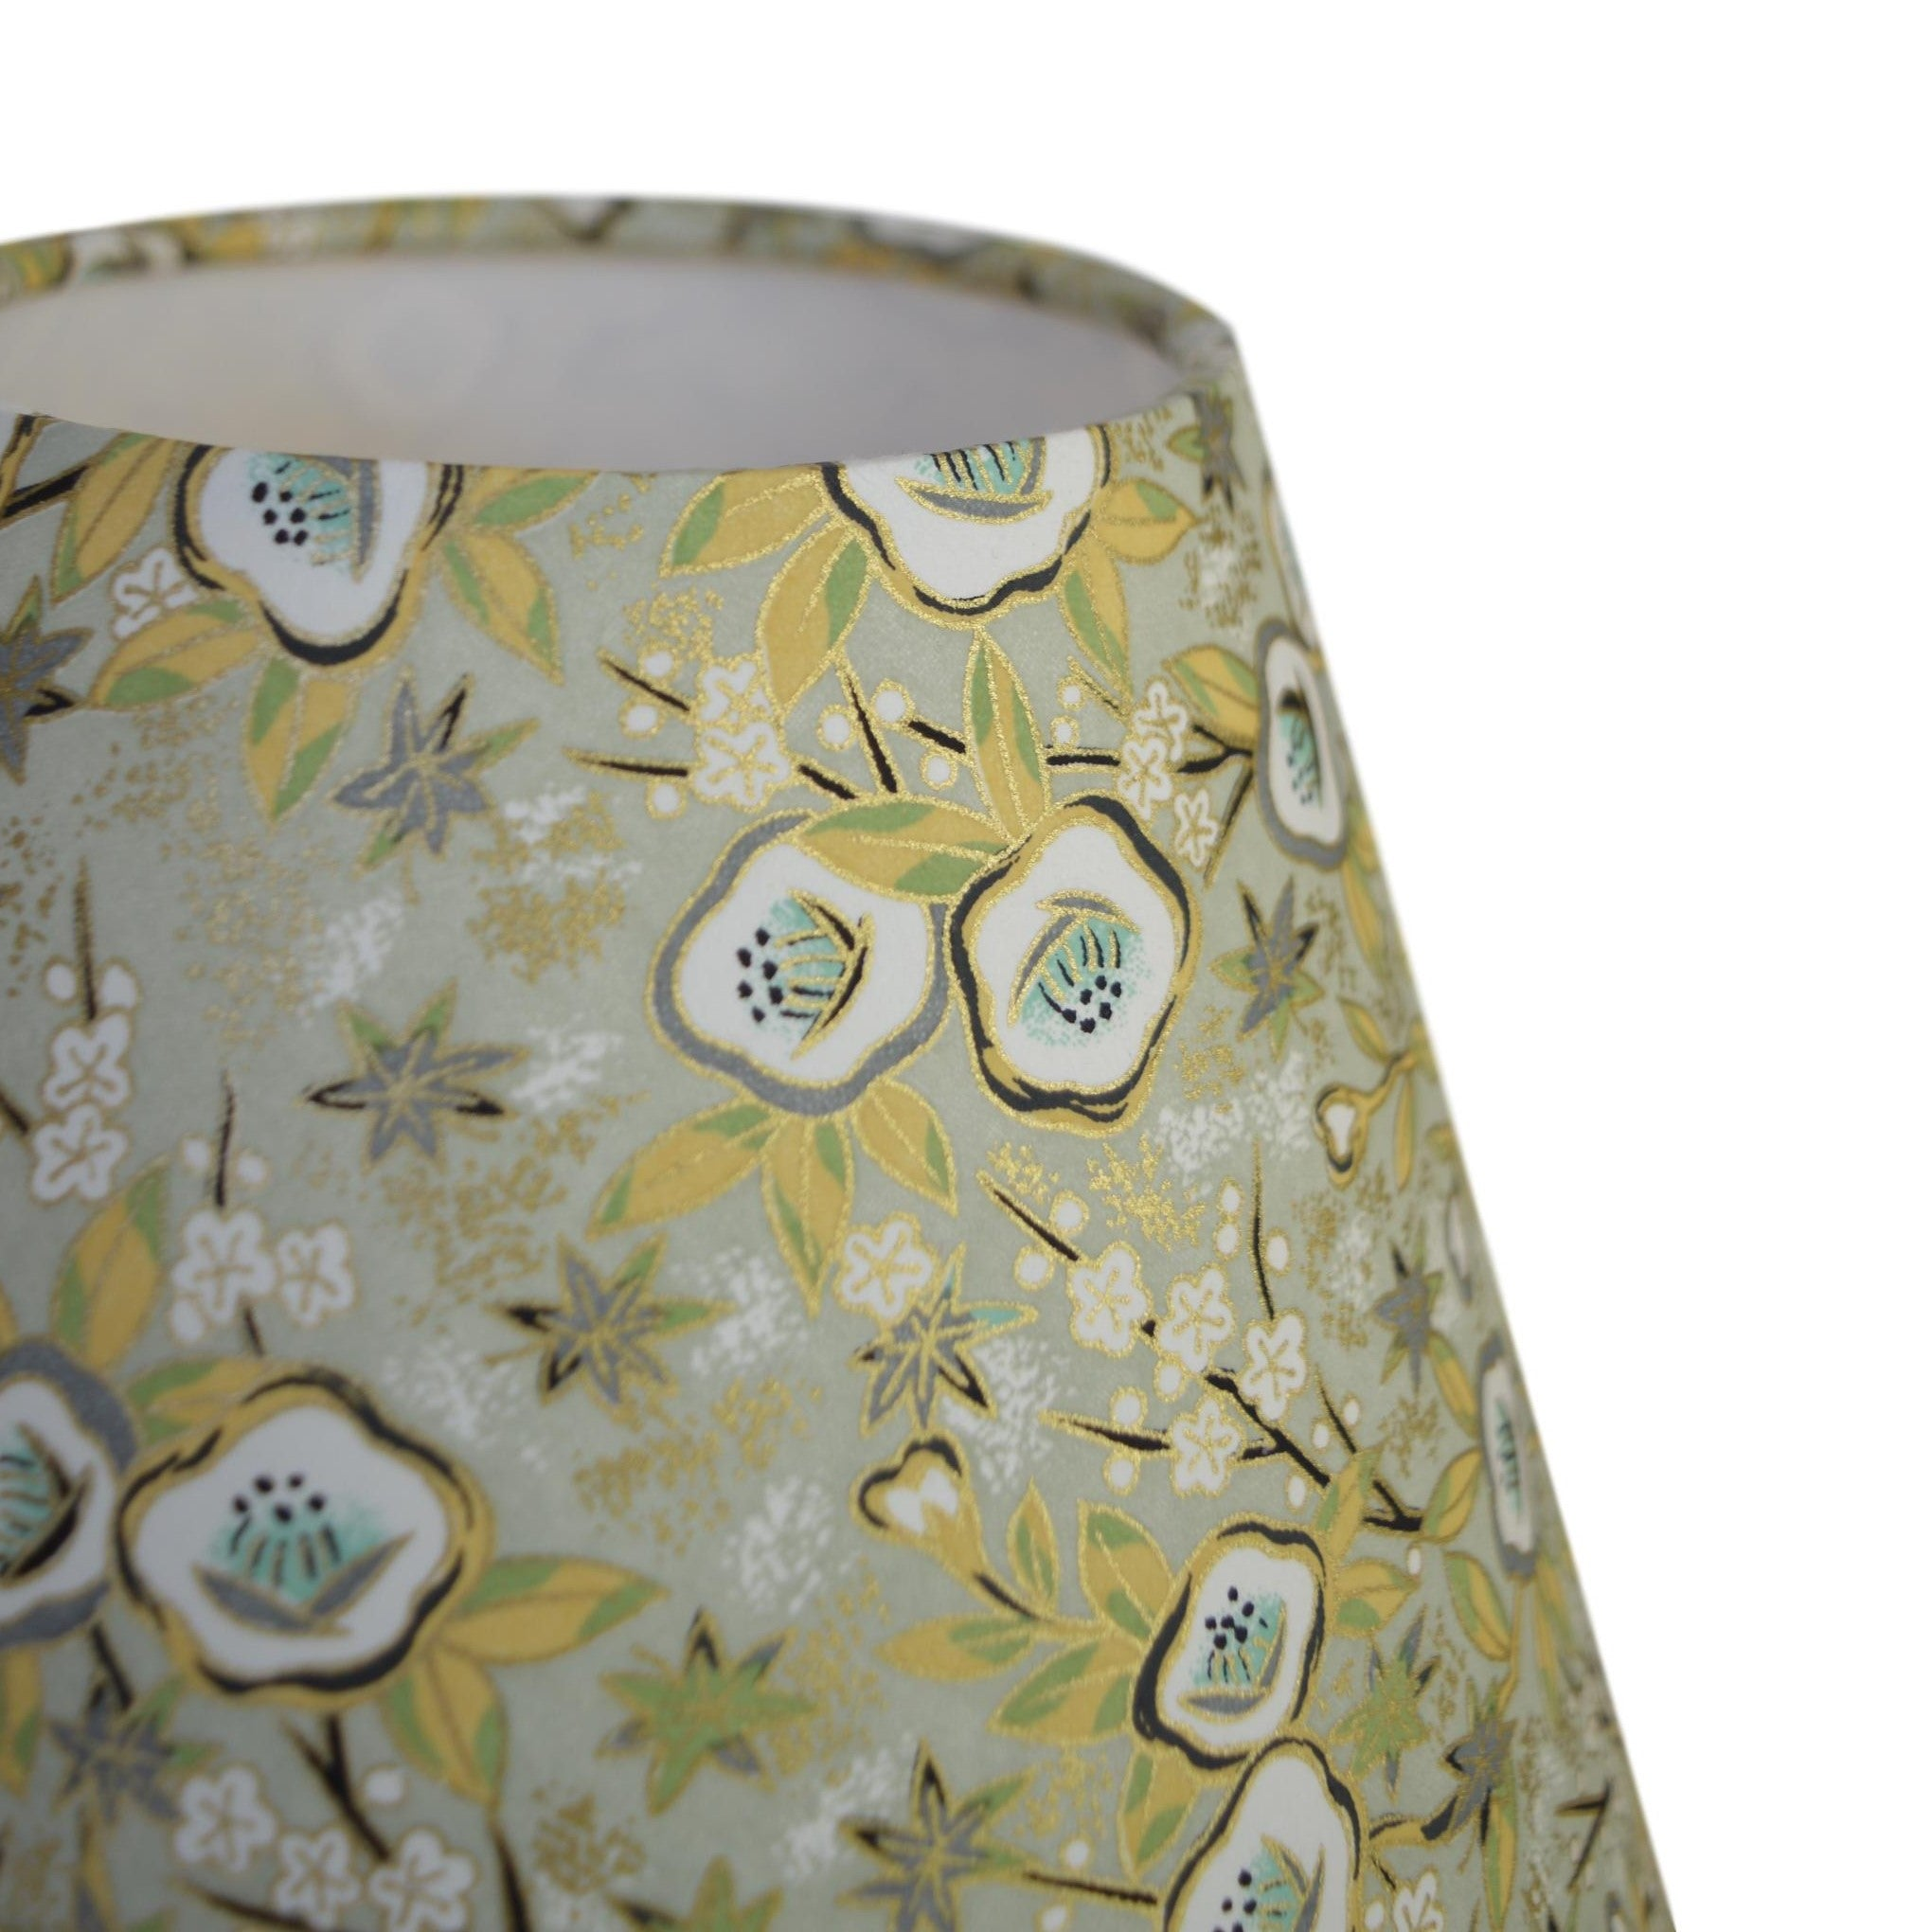 Munro and Kerr chiyogami paper for making into a empire lampshade